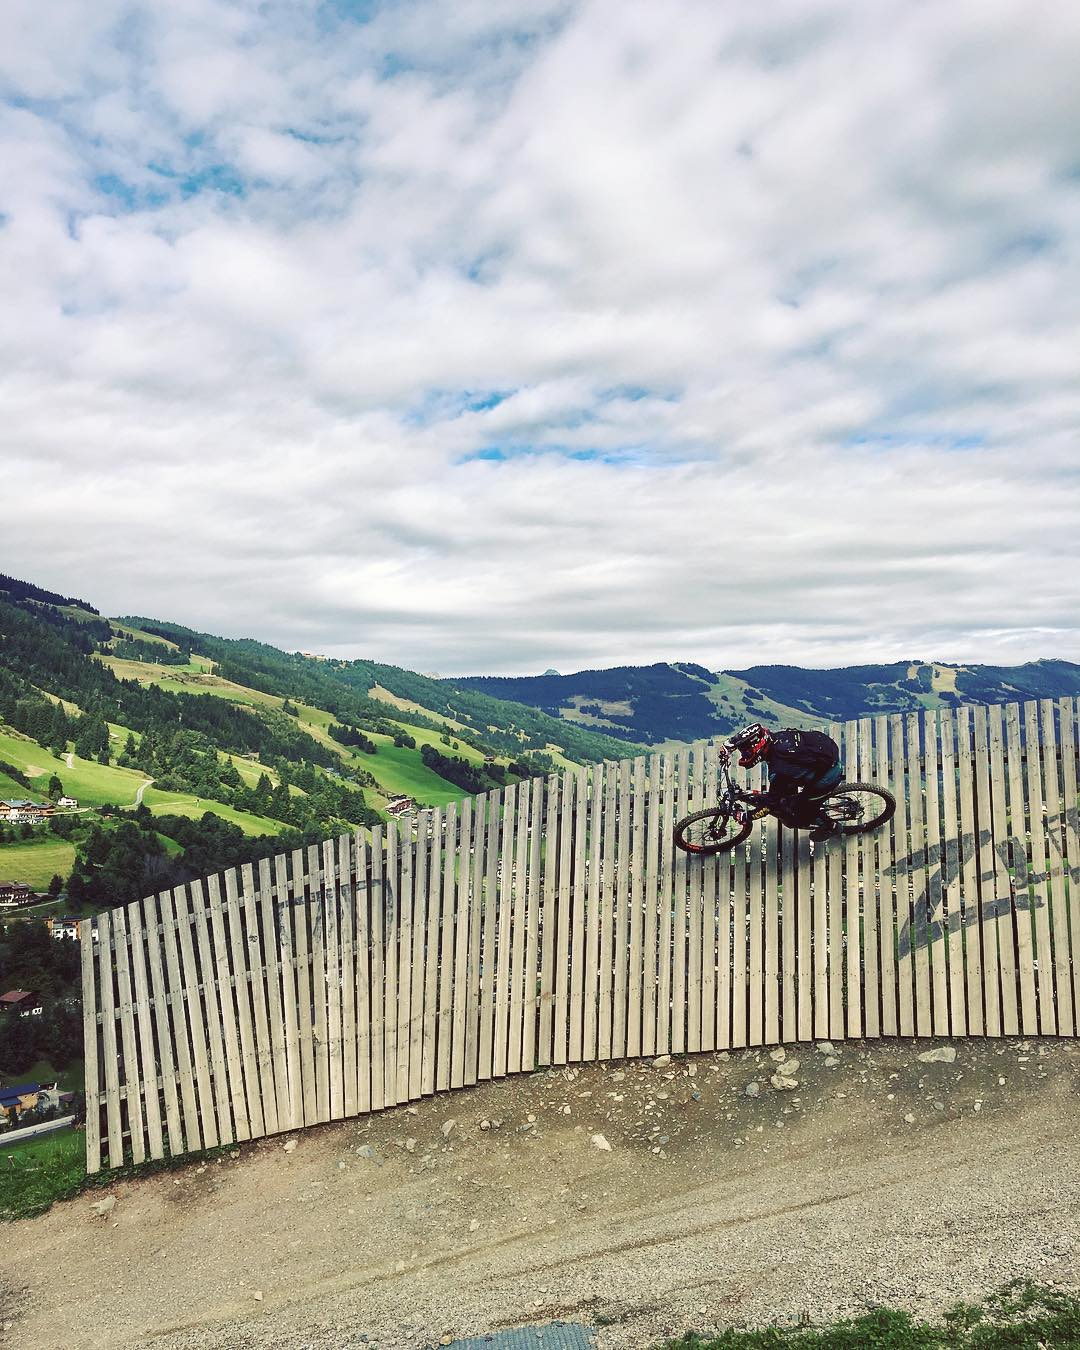 Happy Friday! @derestricted taking the high line into the weekend 🏁 #haibike #xduro #emtb #emountainbike #ebike #saalbach #officelife #agencylife